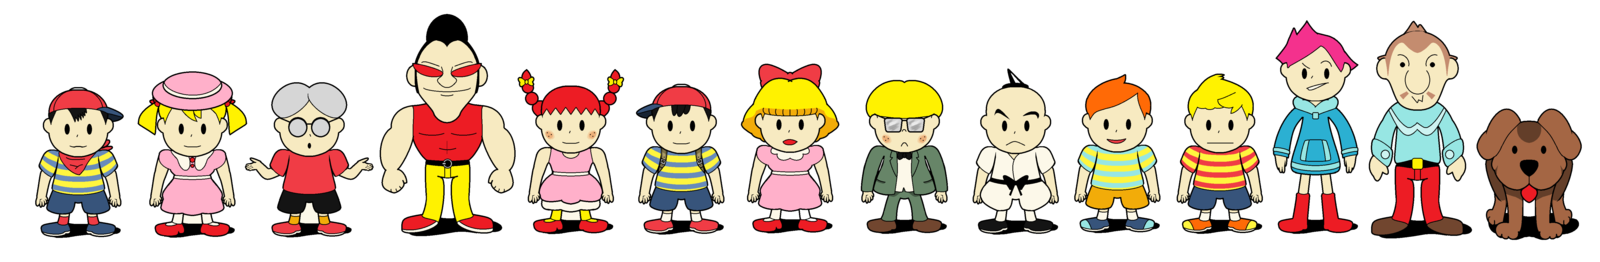 Earthbound Characters | Mother Earthbound series main